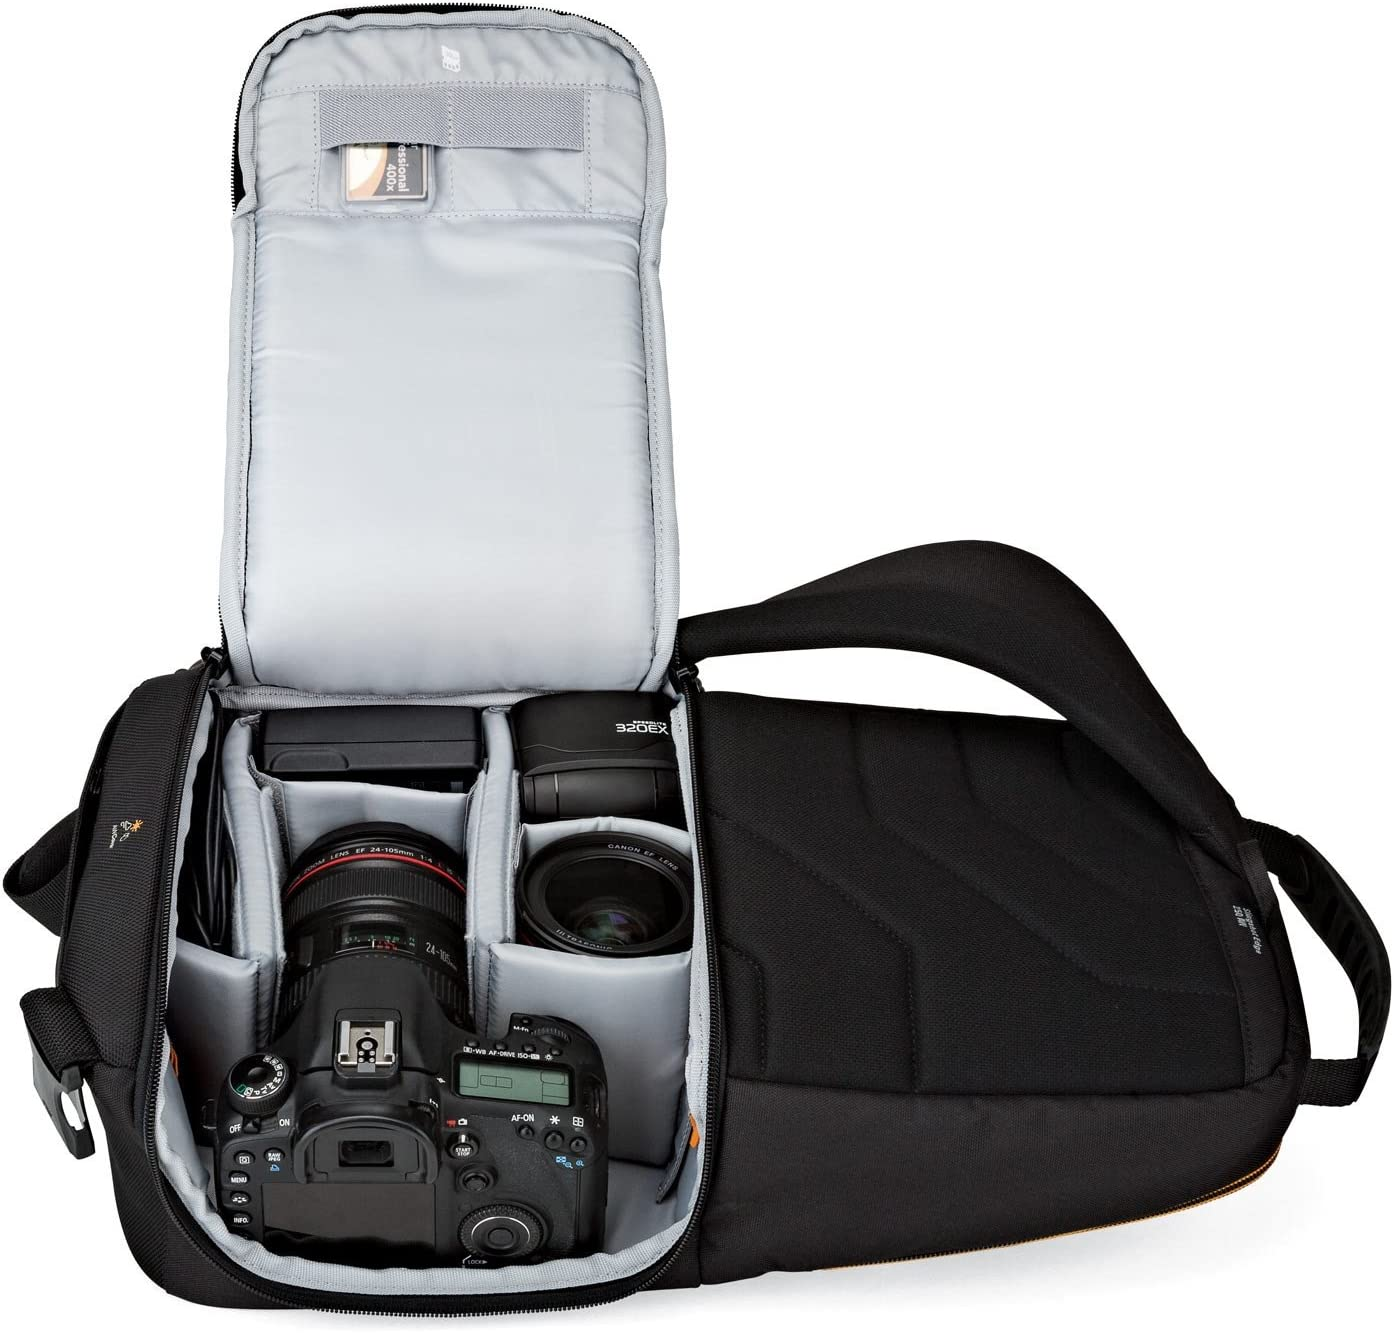 Lowepro PLECAK SLINGSHOT EDGE 250 AW BLACK: Amazon.es: Electrónica